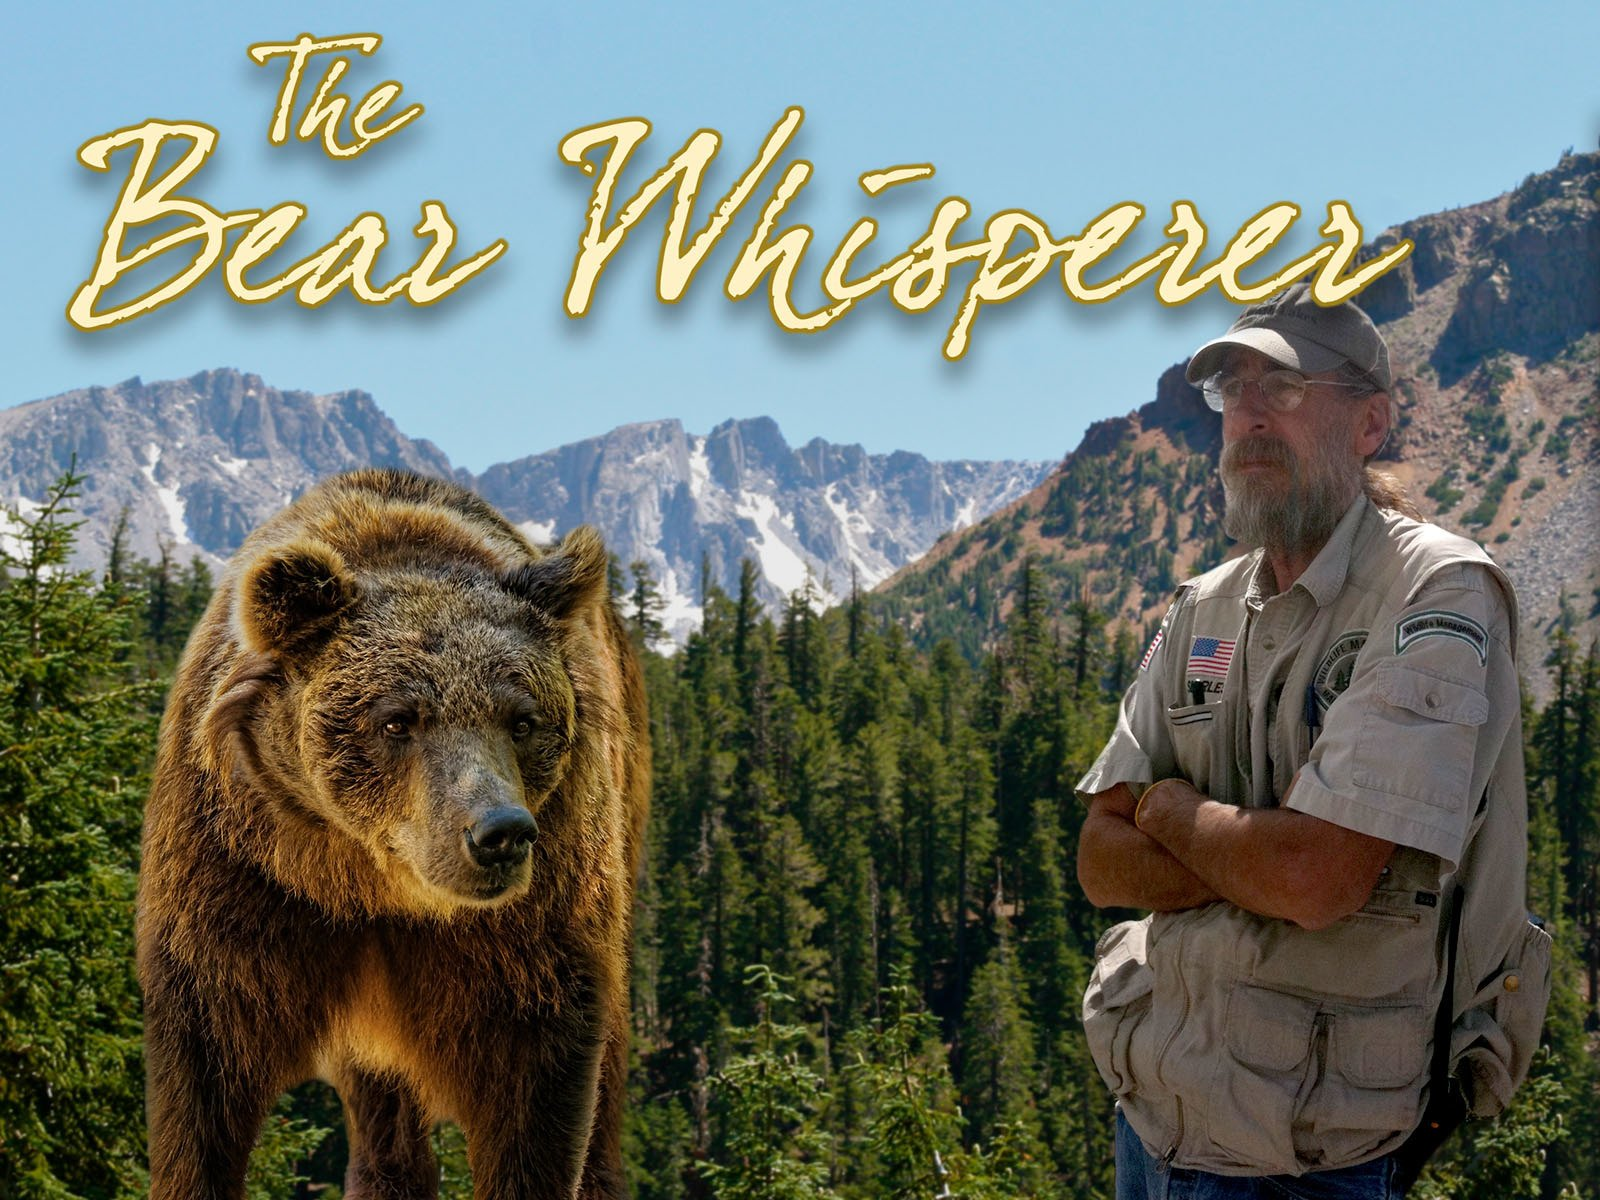 The Bear Whisperer - Season 2